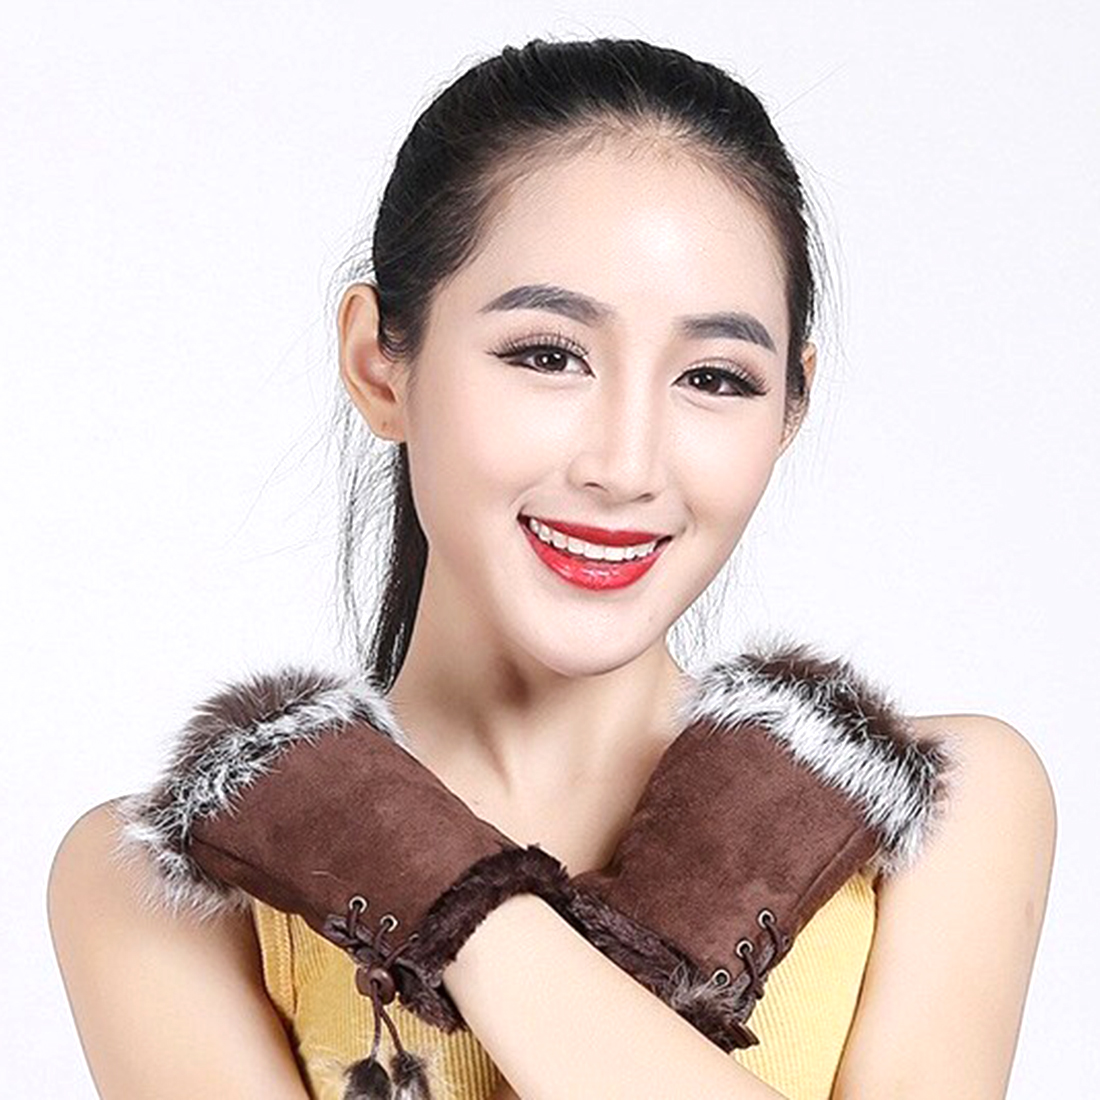 Womens beige leather gloves - Pink Black White Red Beige Leather Golves Women Ladies Fashion Stylish Winter Gloves 2016 Faux Fur Patchwork Top Bandage Gloves